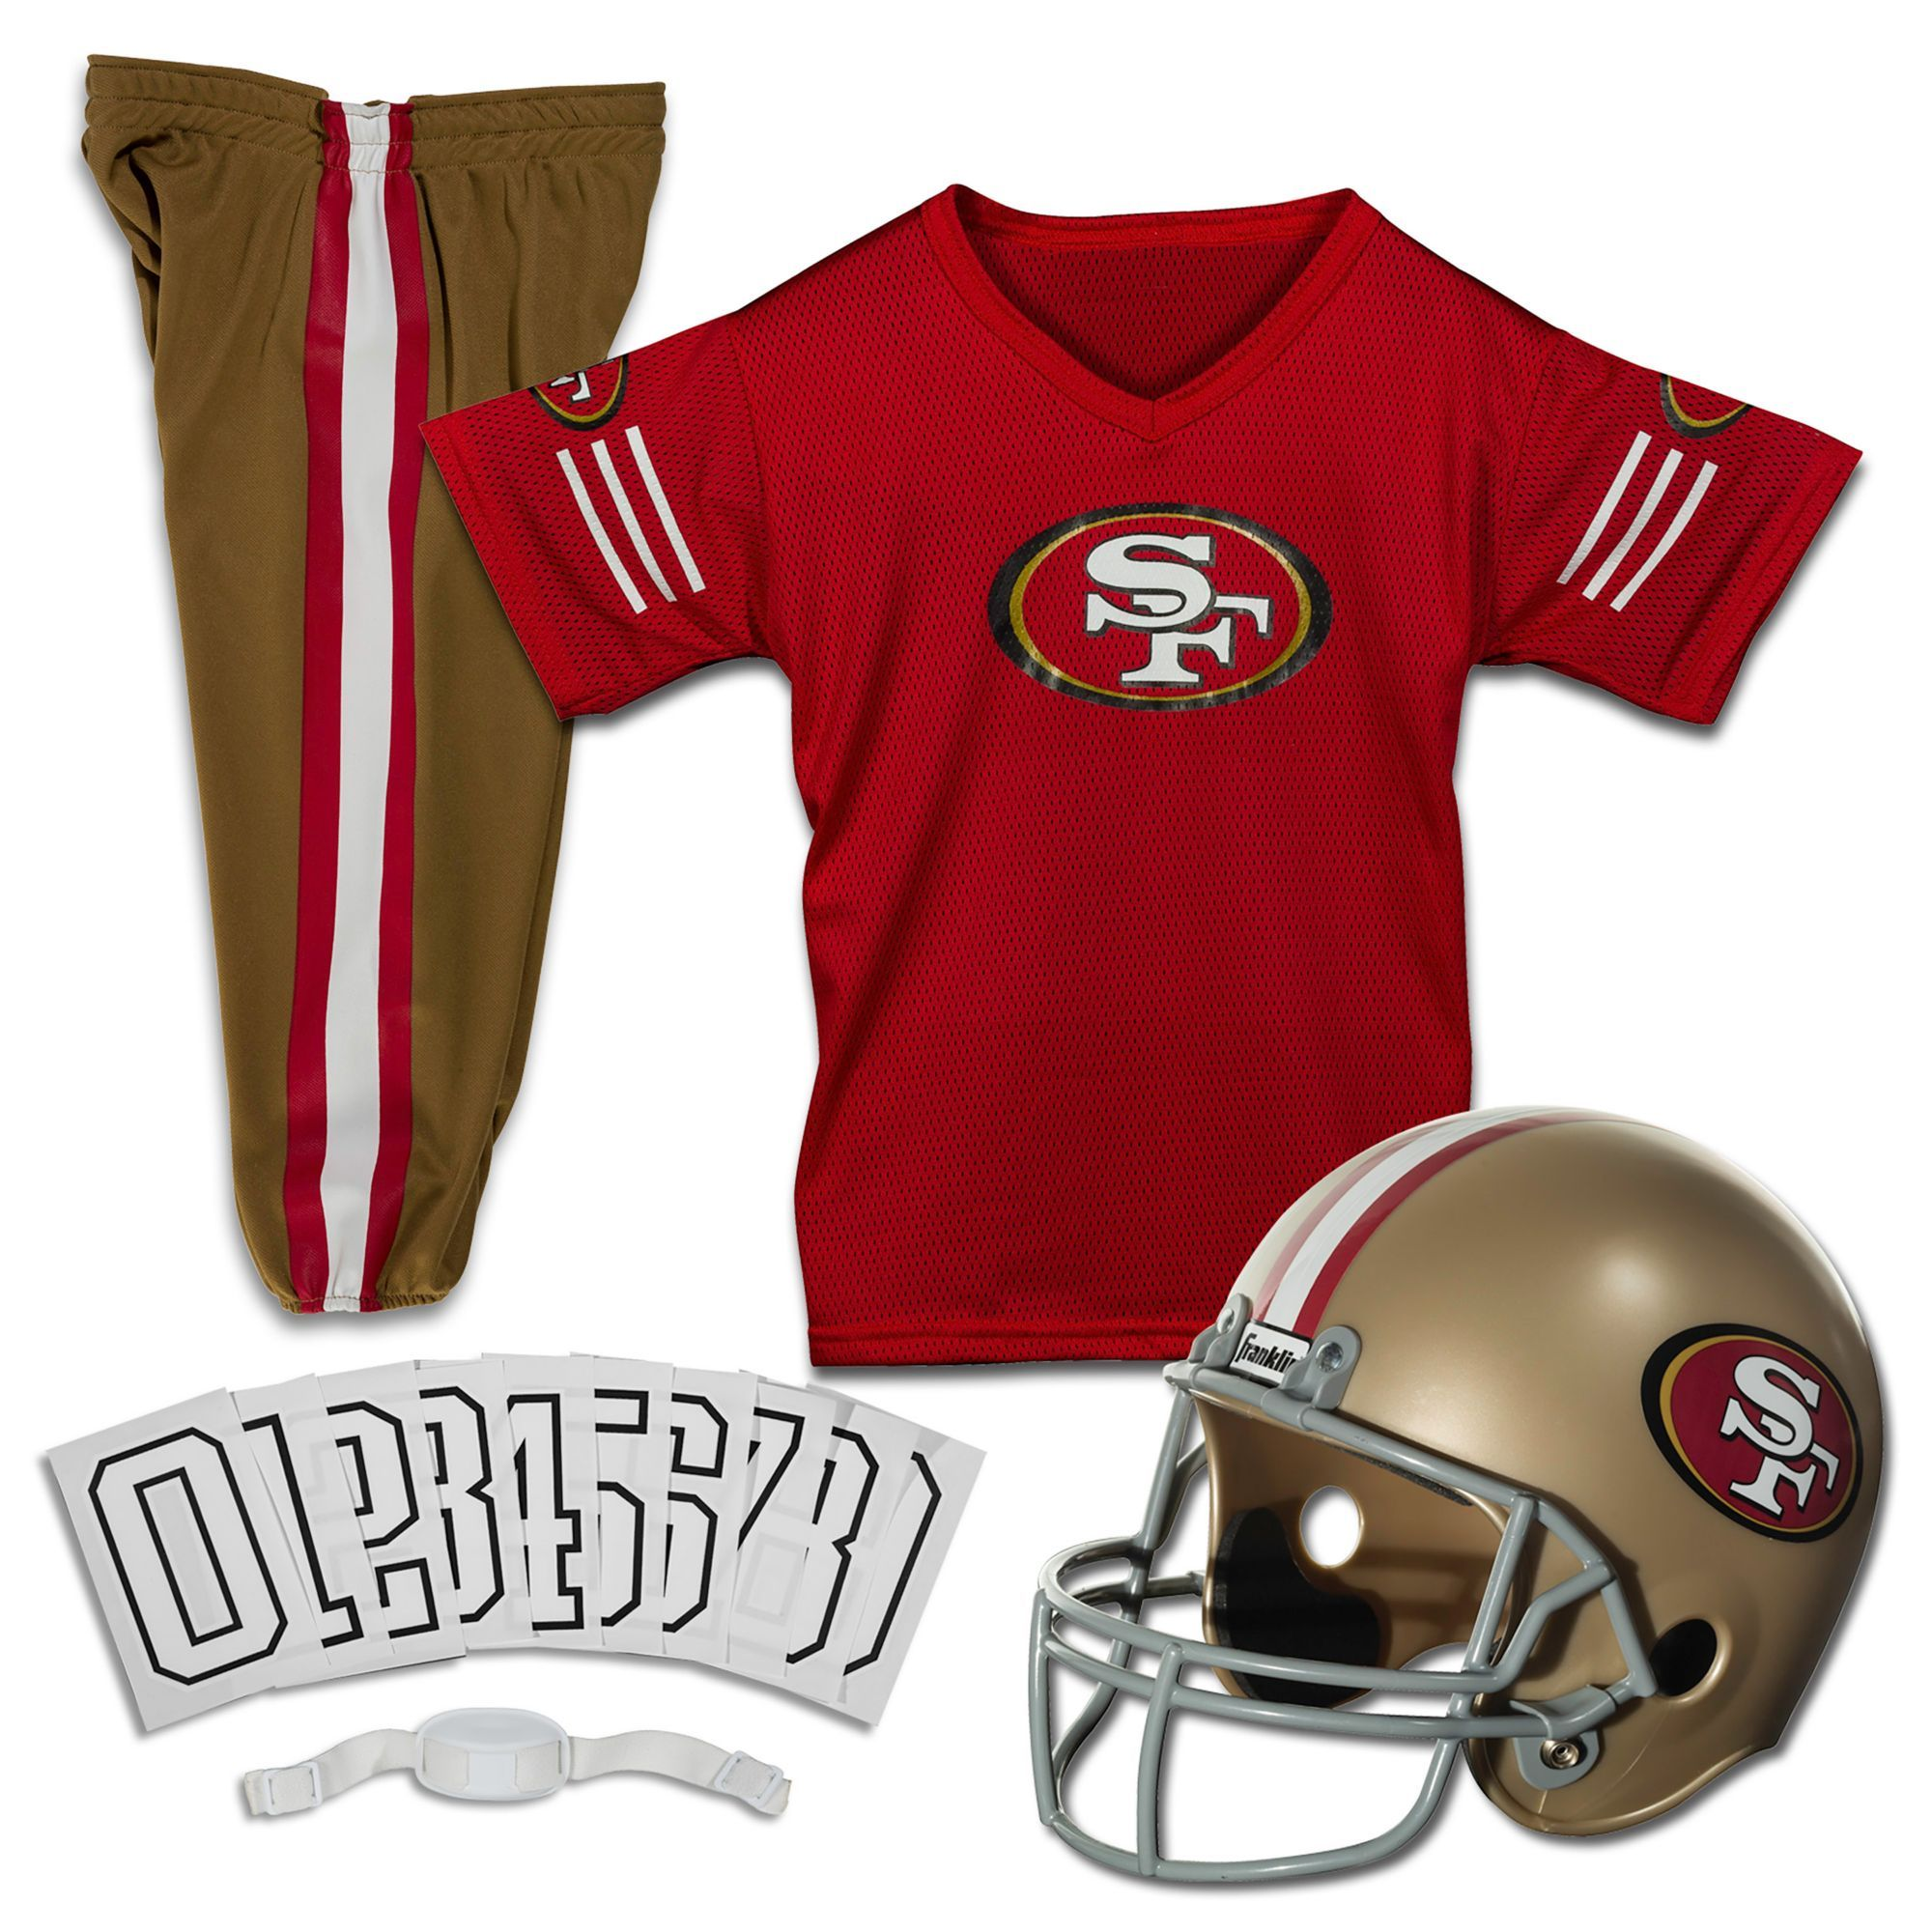 b746cd4d Franklin San Francisco 49ers Youth Deluxe Uniform Set in 2019 ...